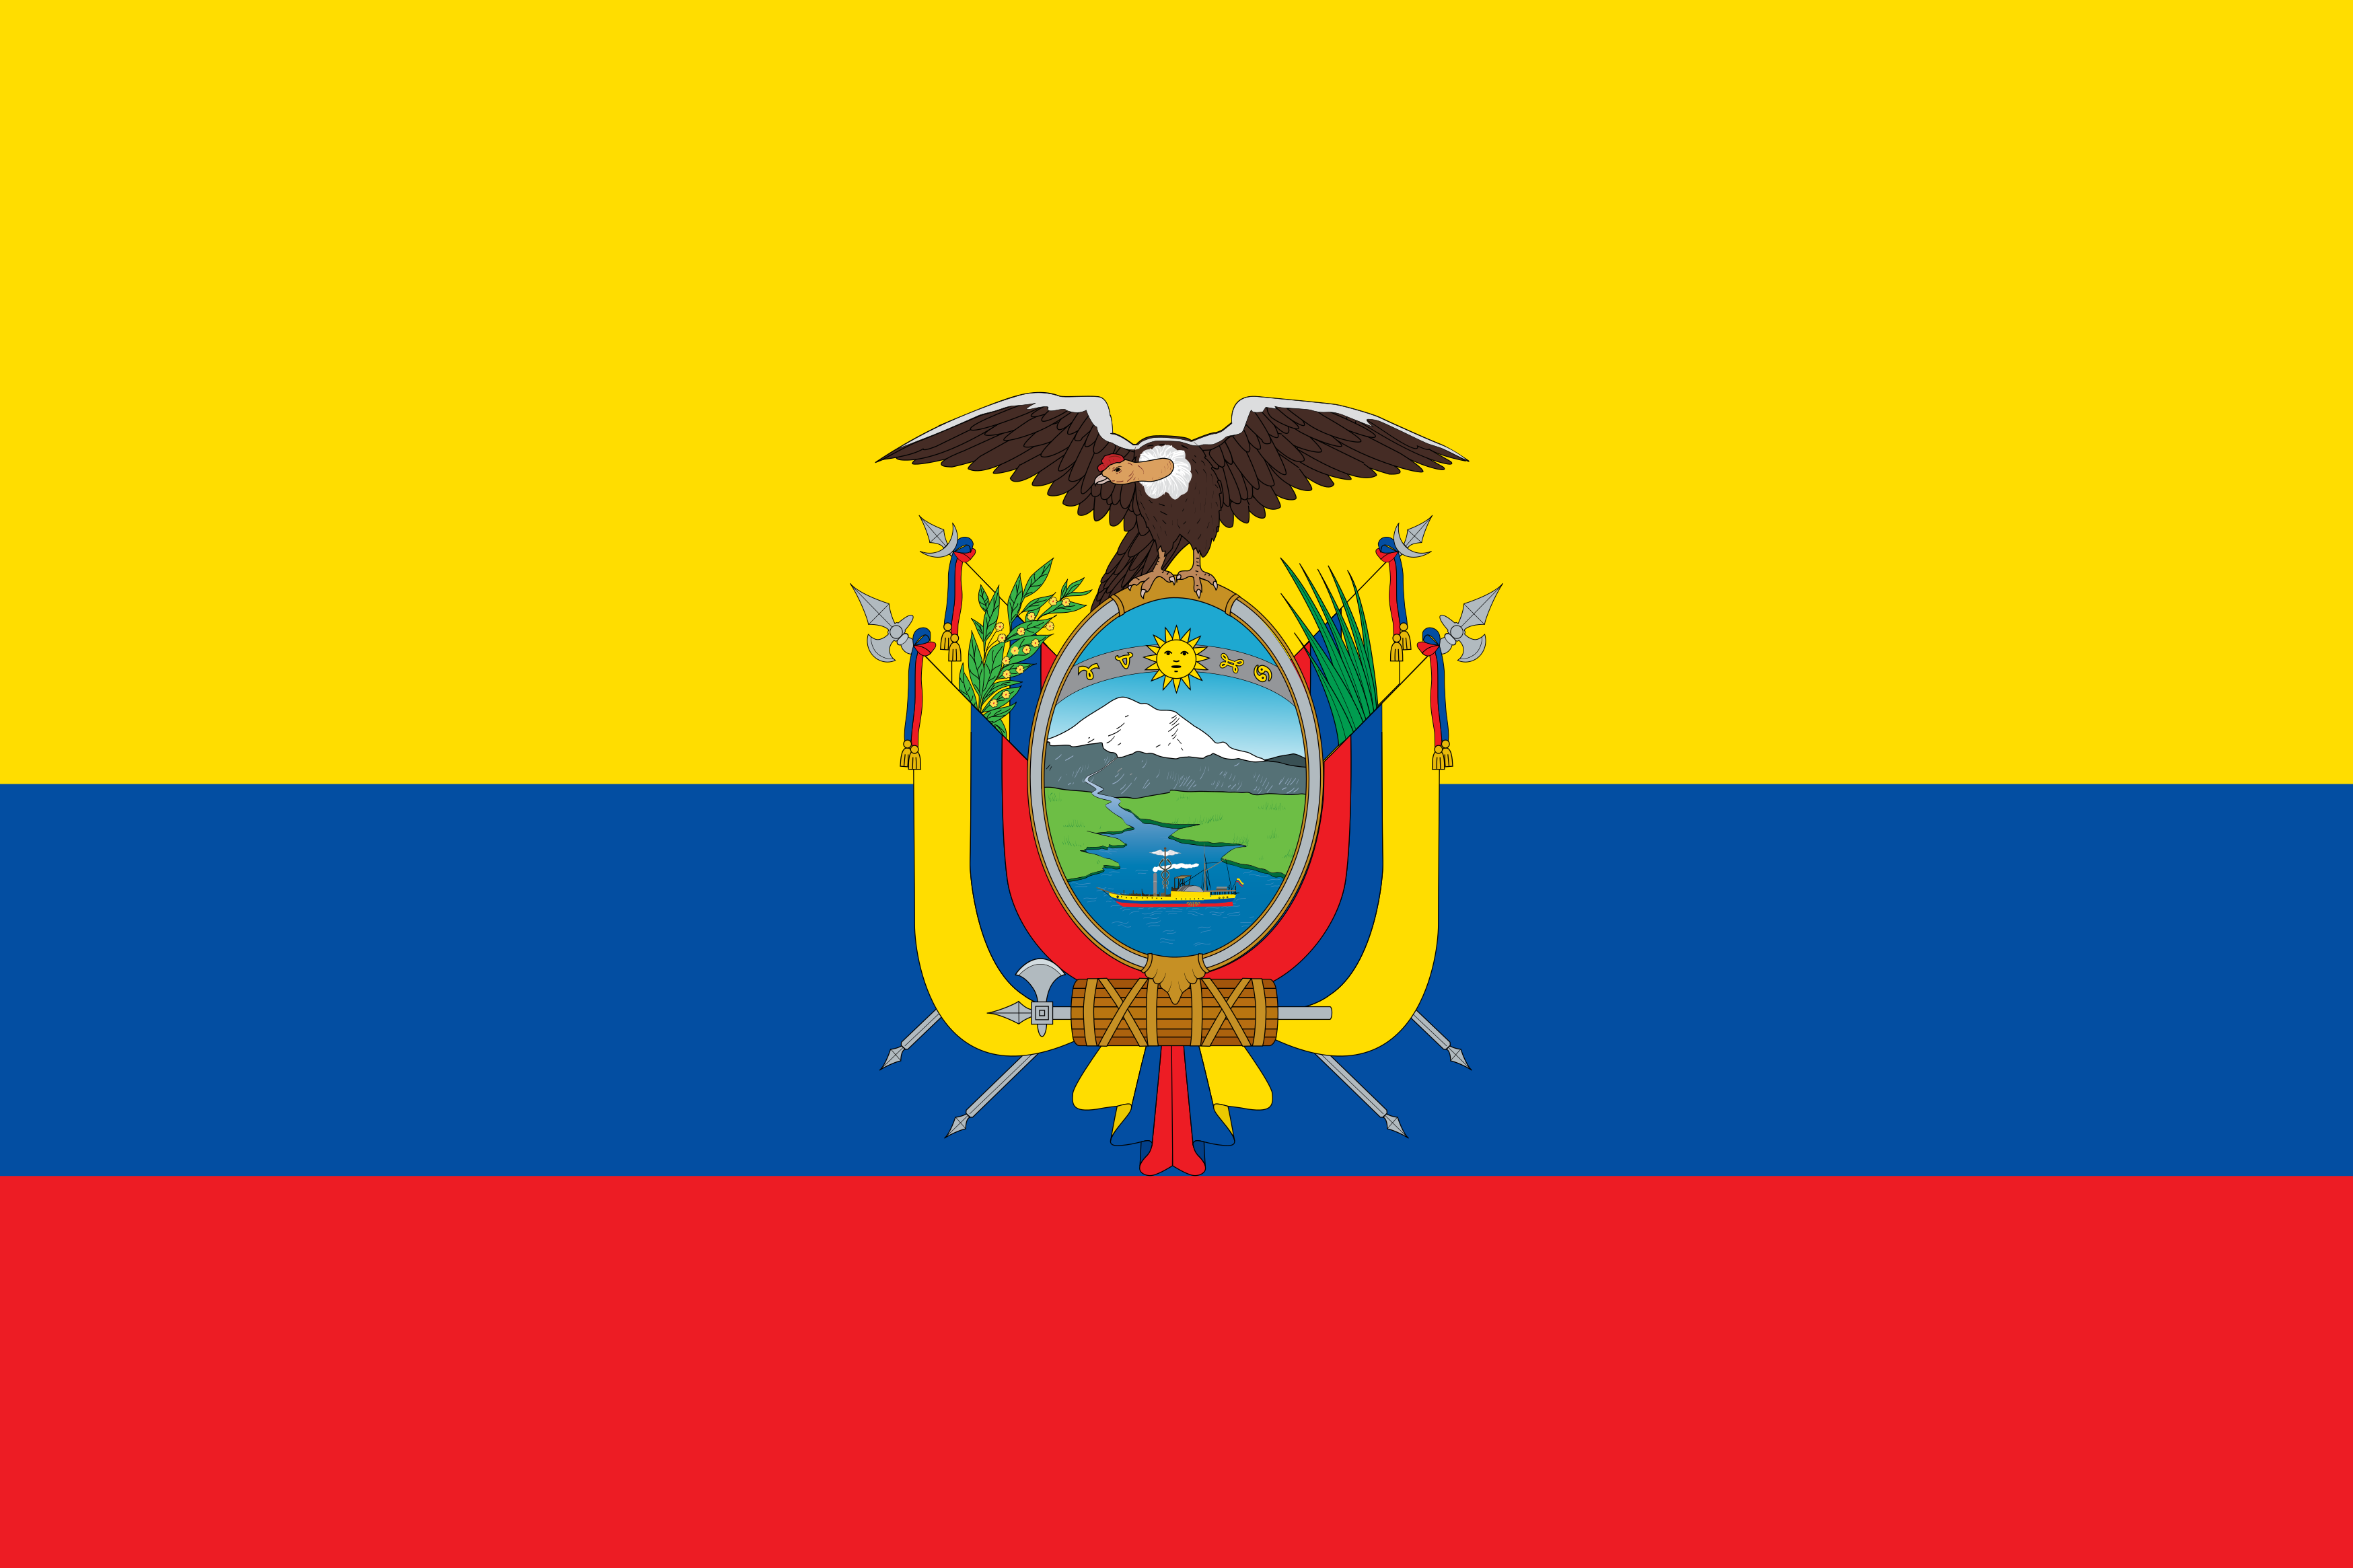 Bandeira do Equador.